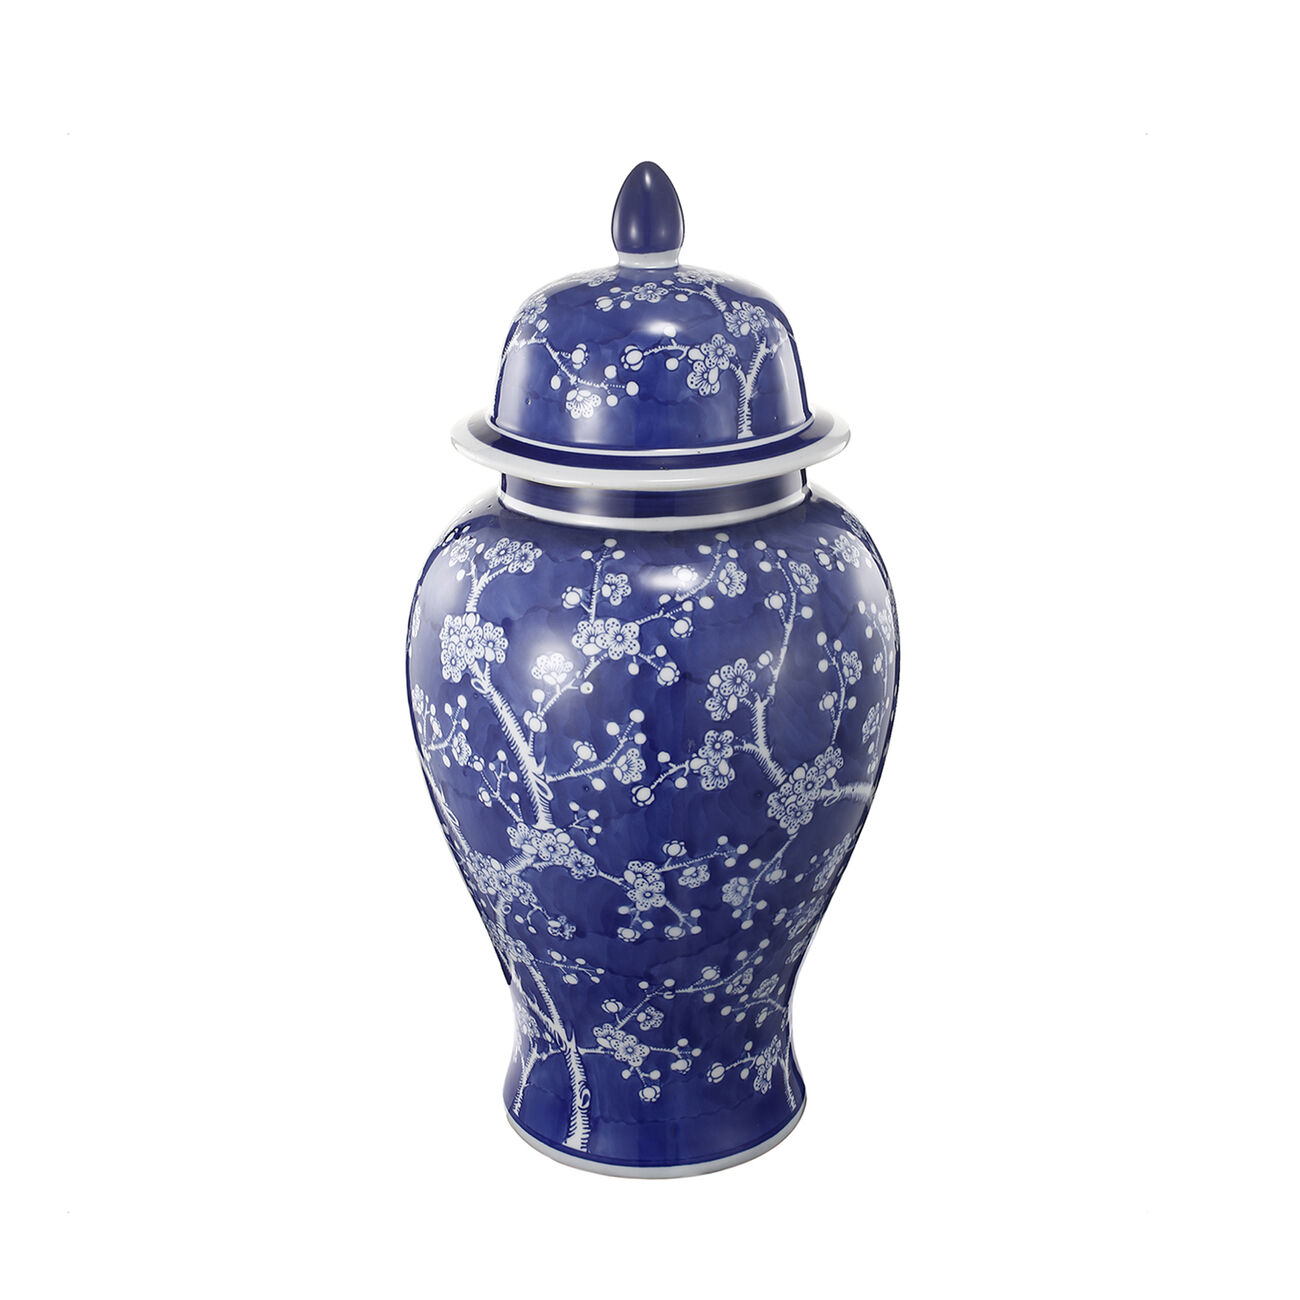 Well- Designed Flowers Ginger Jar In Blue and White